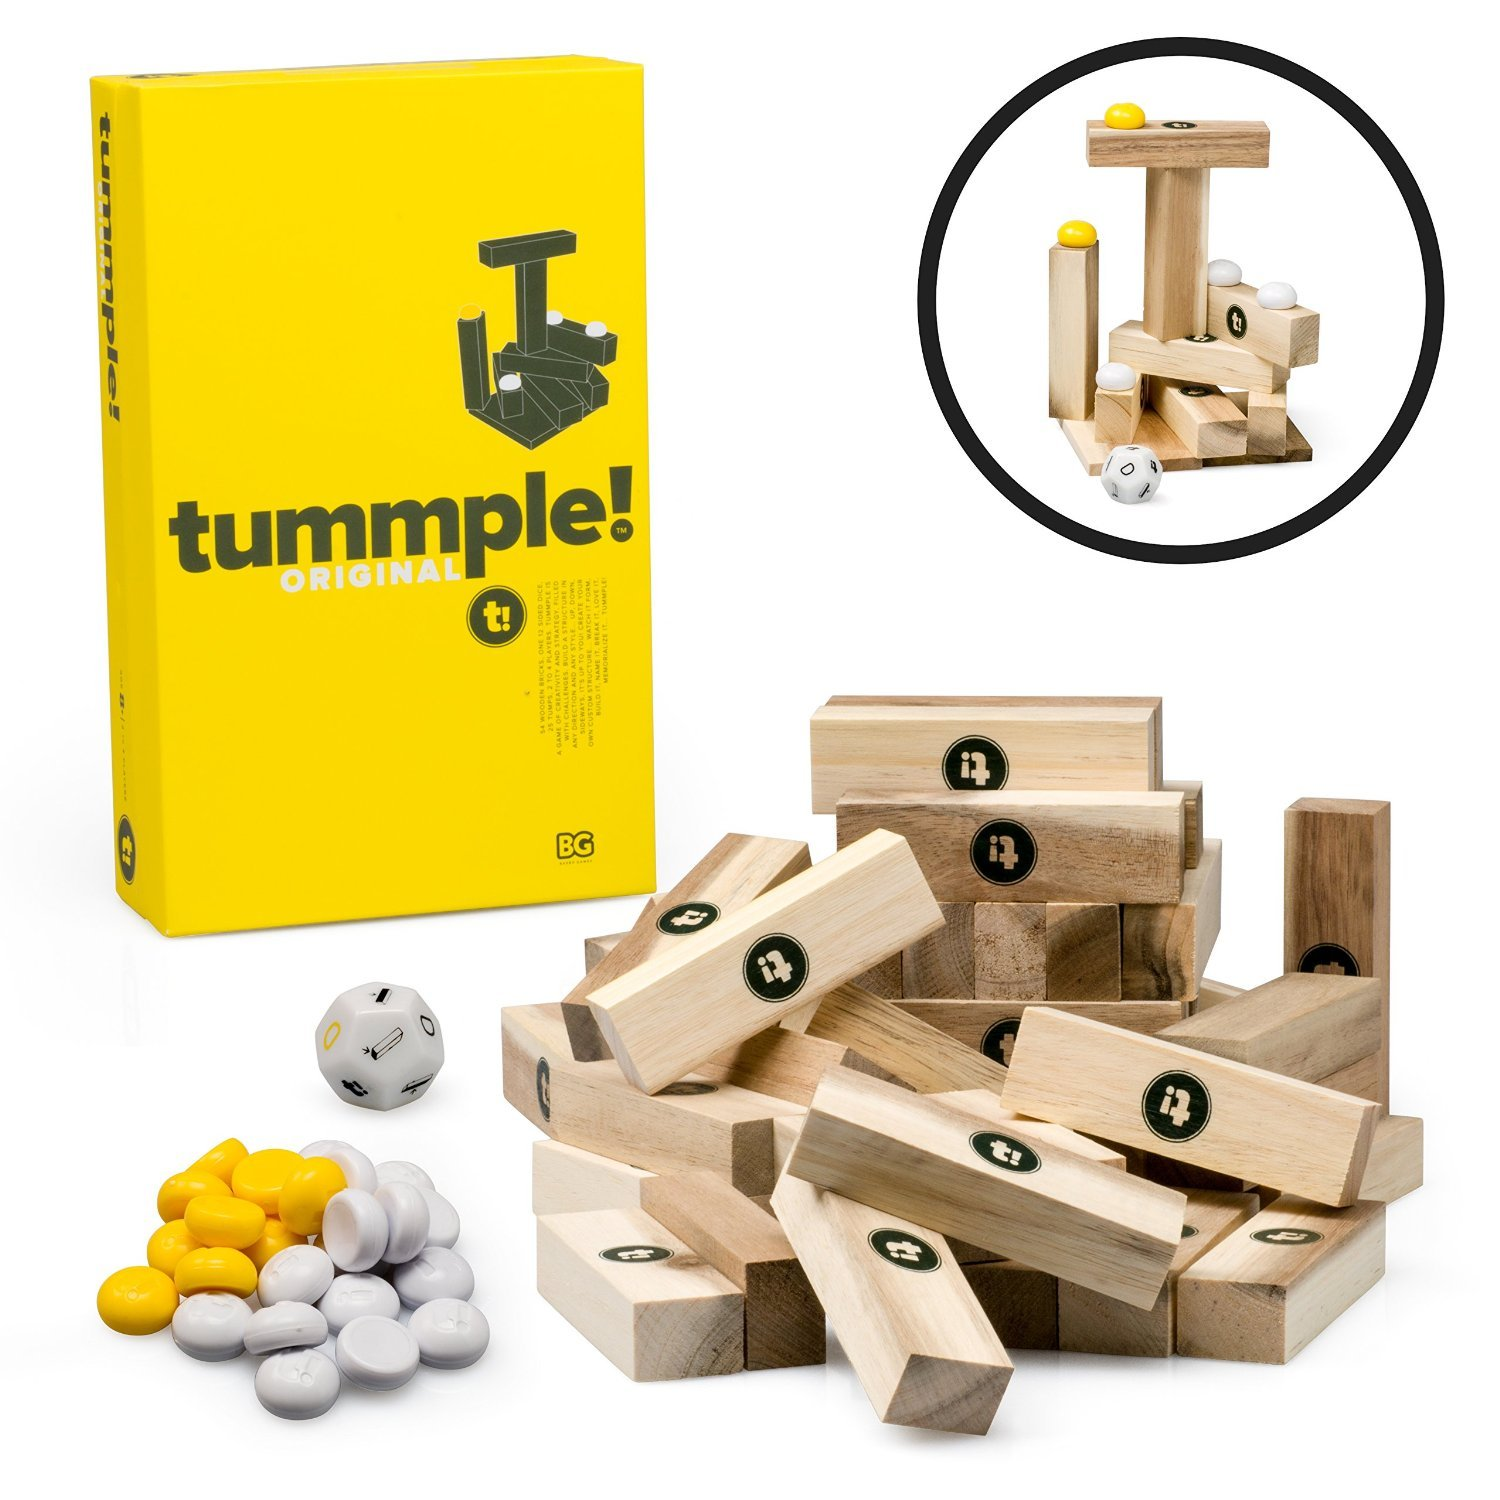 BAXBO Tummple by An Original Wooden Building Block Game (80 Piece Set)